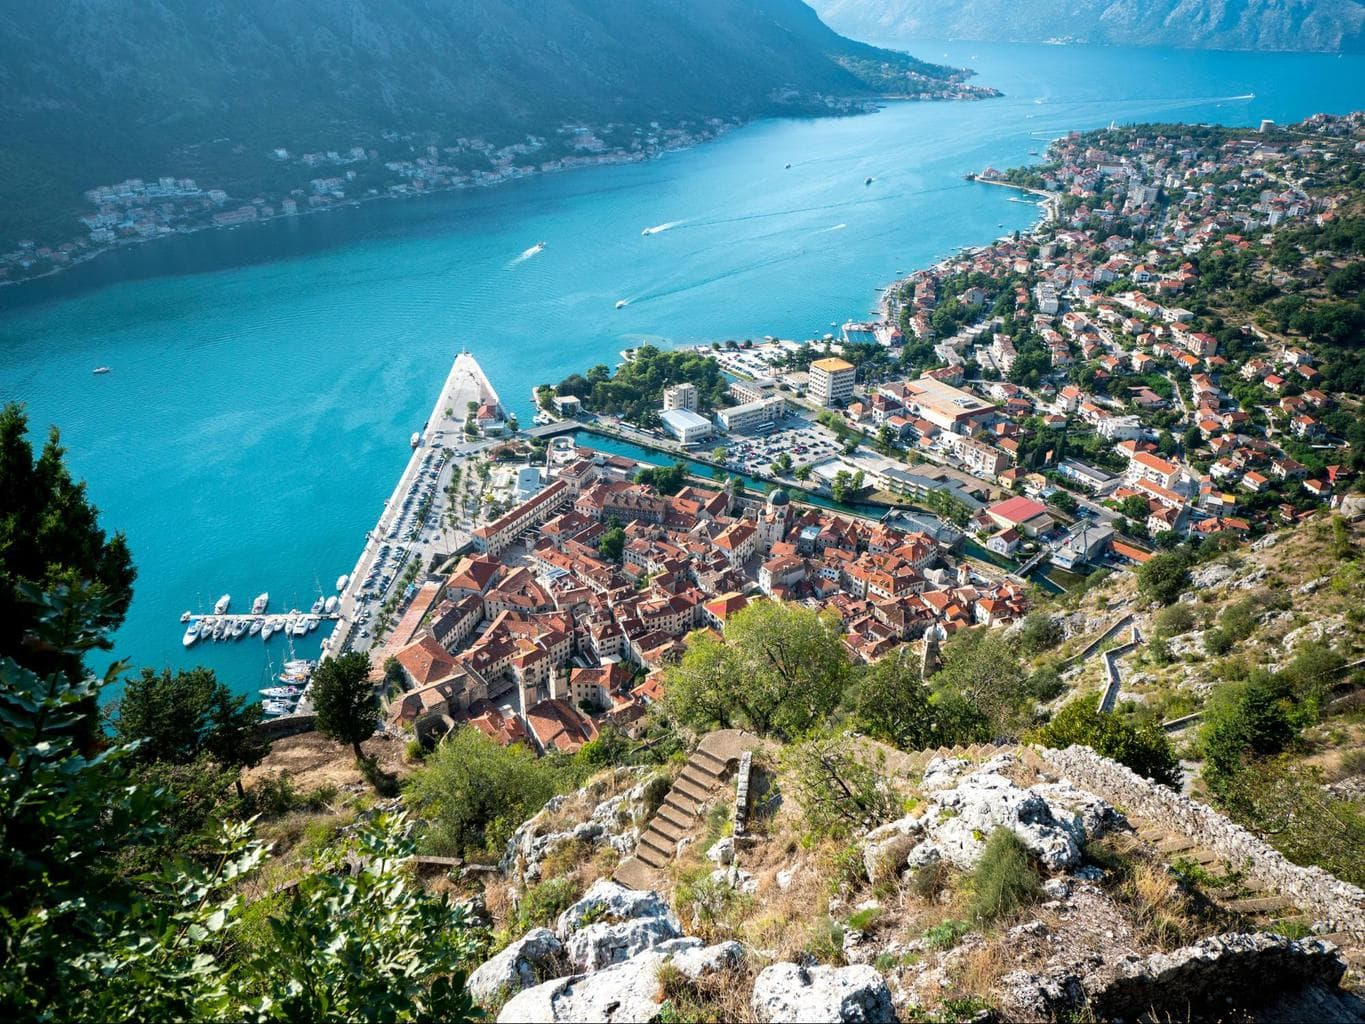 View from above Kotor. The beaches are to the right of the river